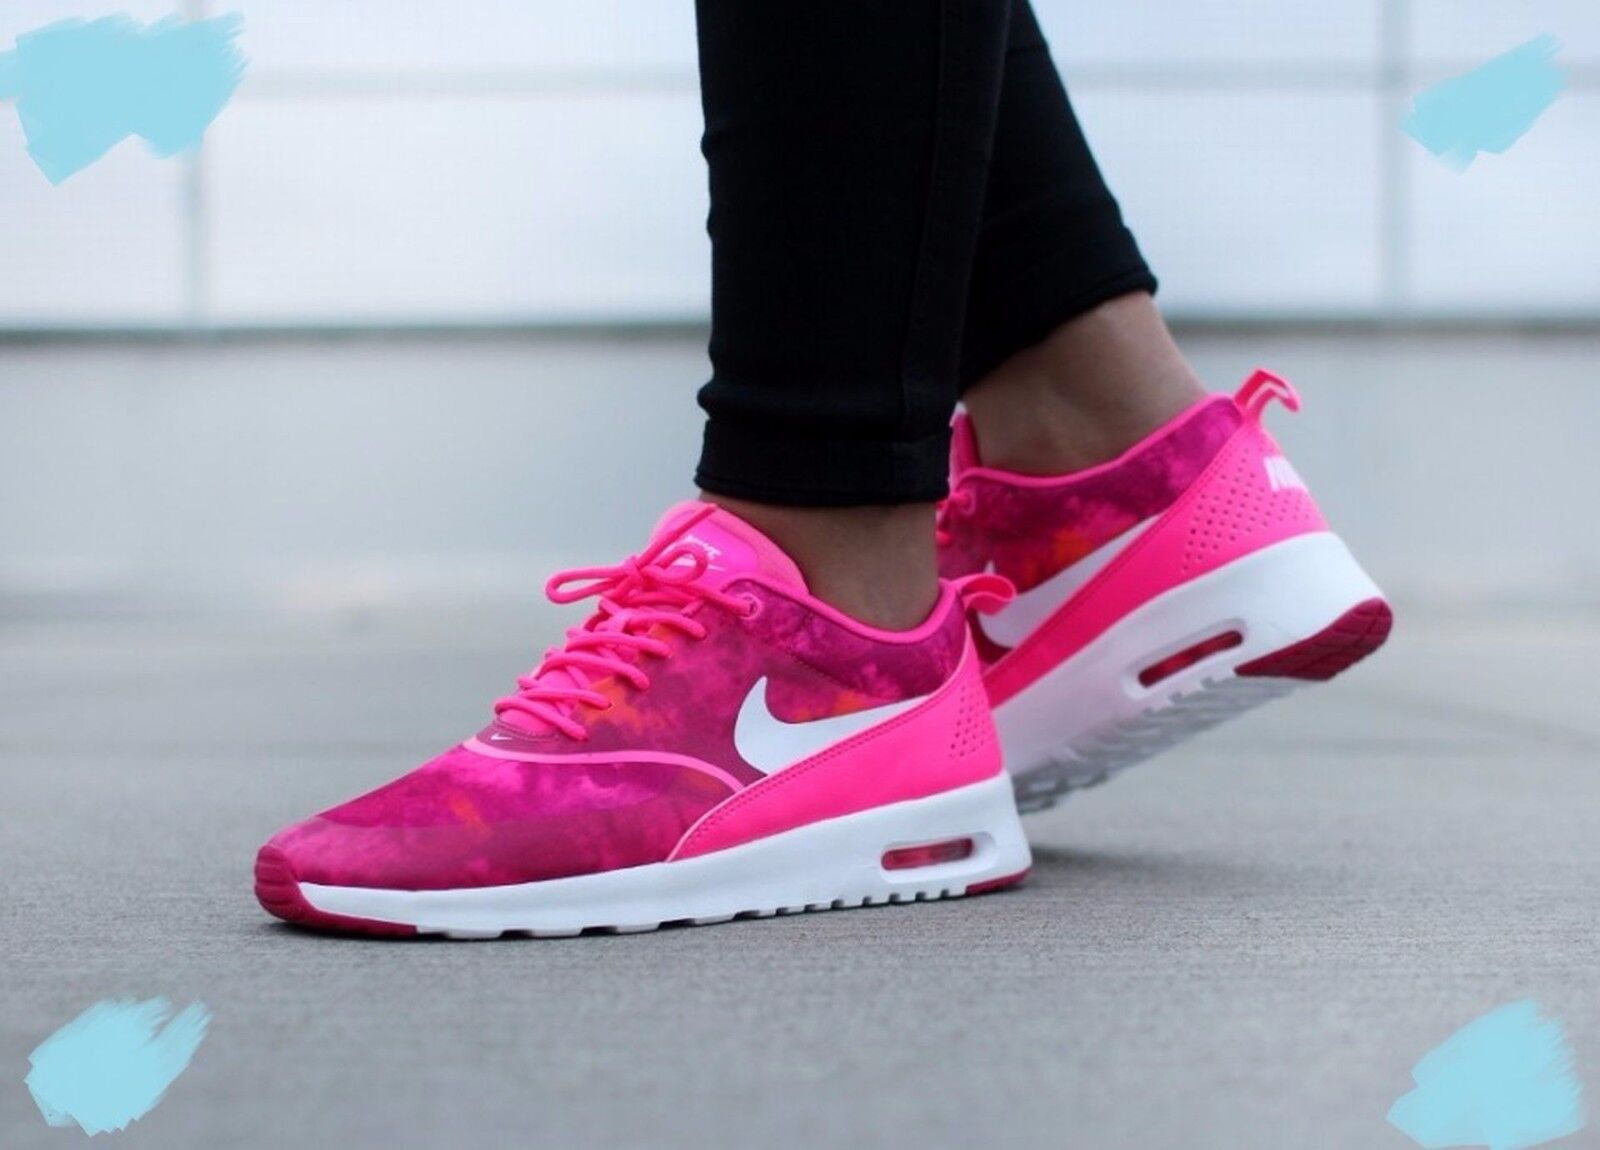 NIKE Air Max Thea Print Wmns Shoes Size 9 599408 602 Pink PowWhite Frbrry